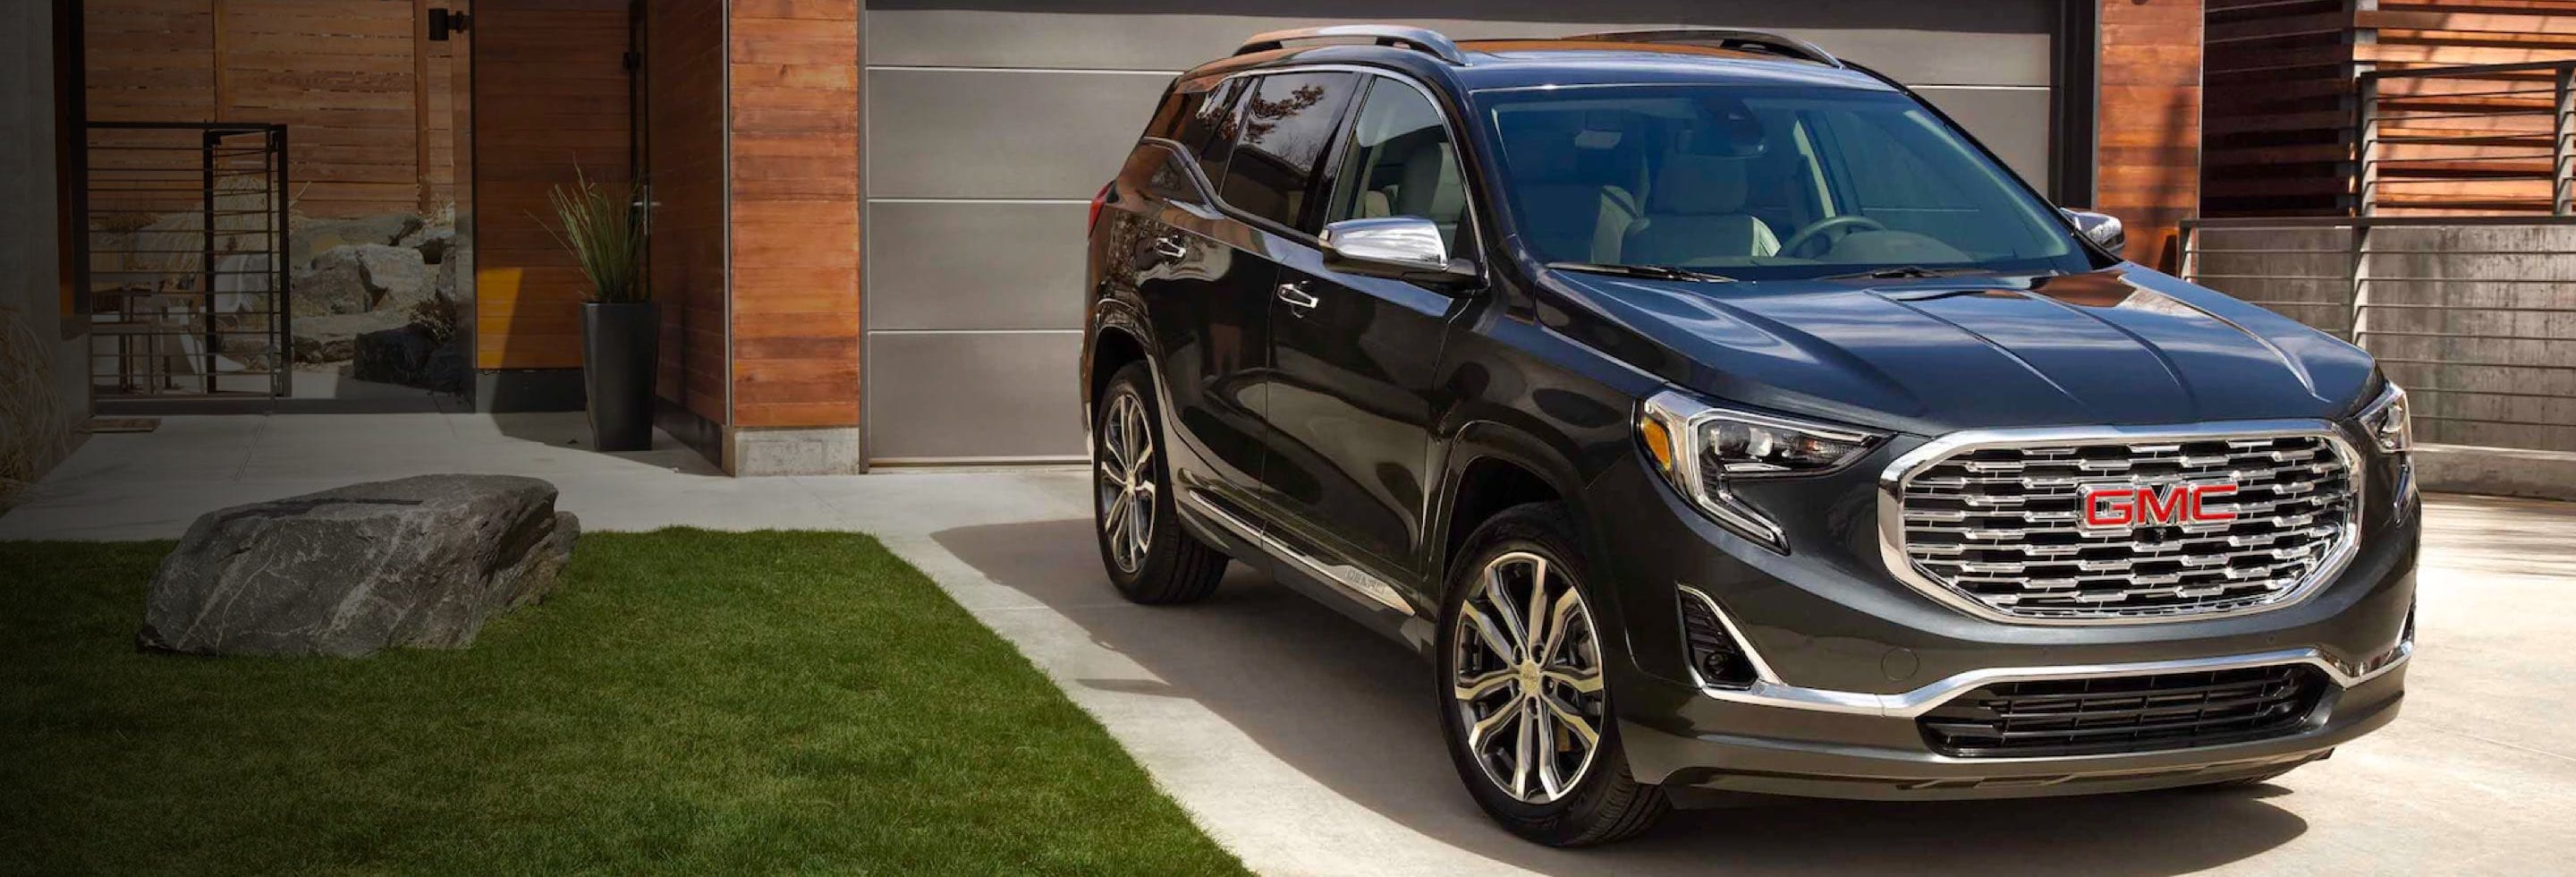 2021 GMC Terrain parked in driveway facing street